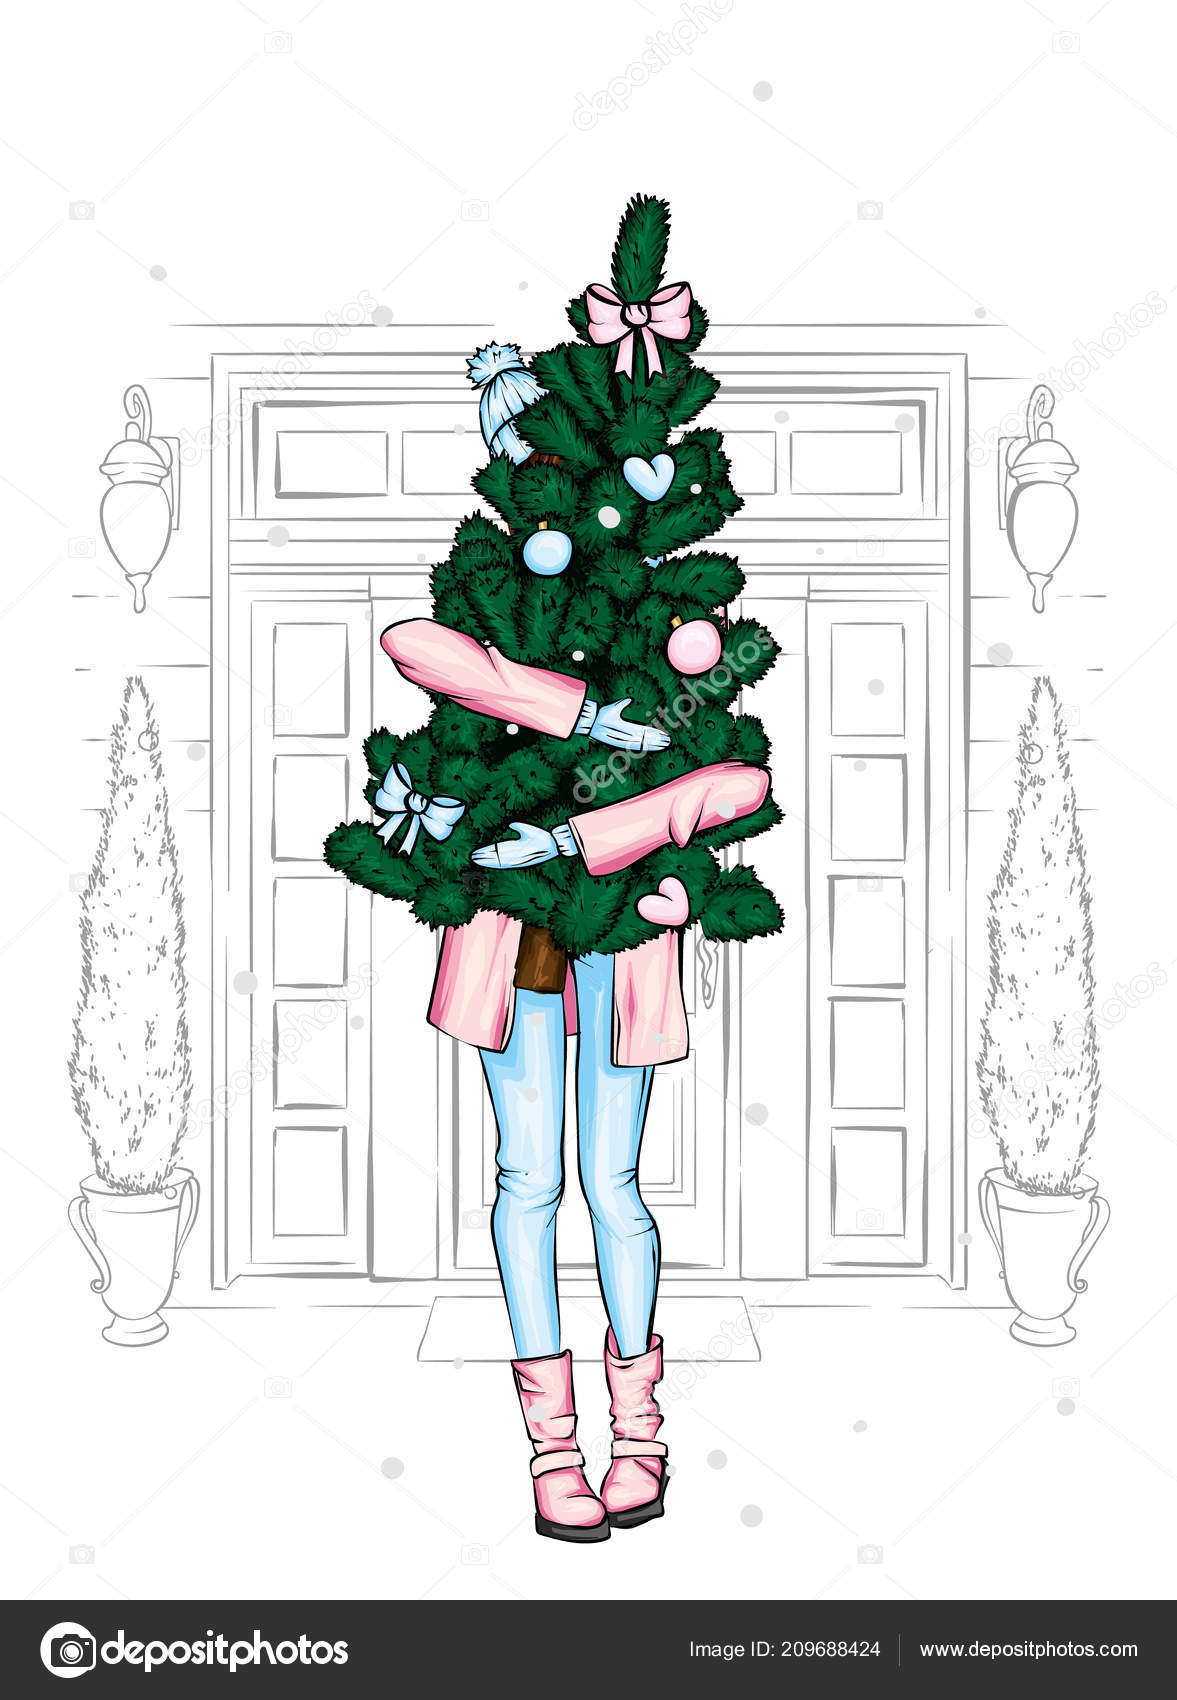 Christmas Boots Drawing.Beautiful Girl Coat Boots Holding Christmas Tree New Year